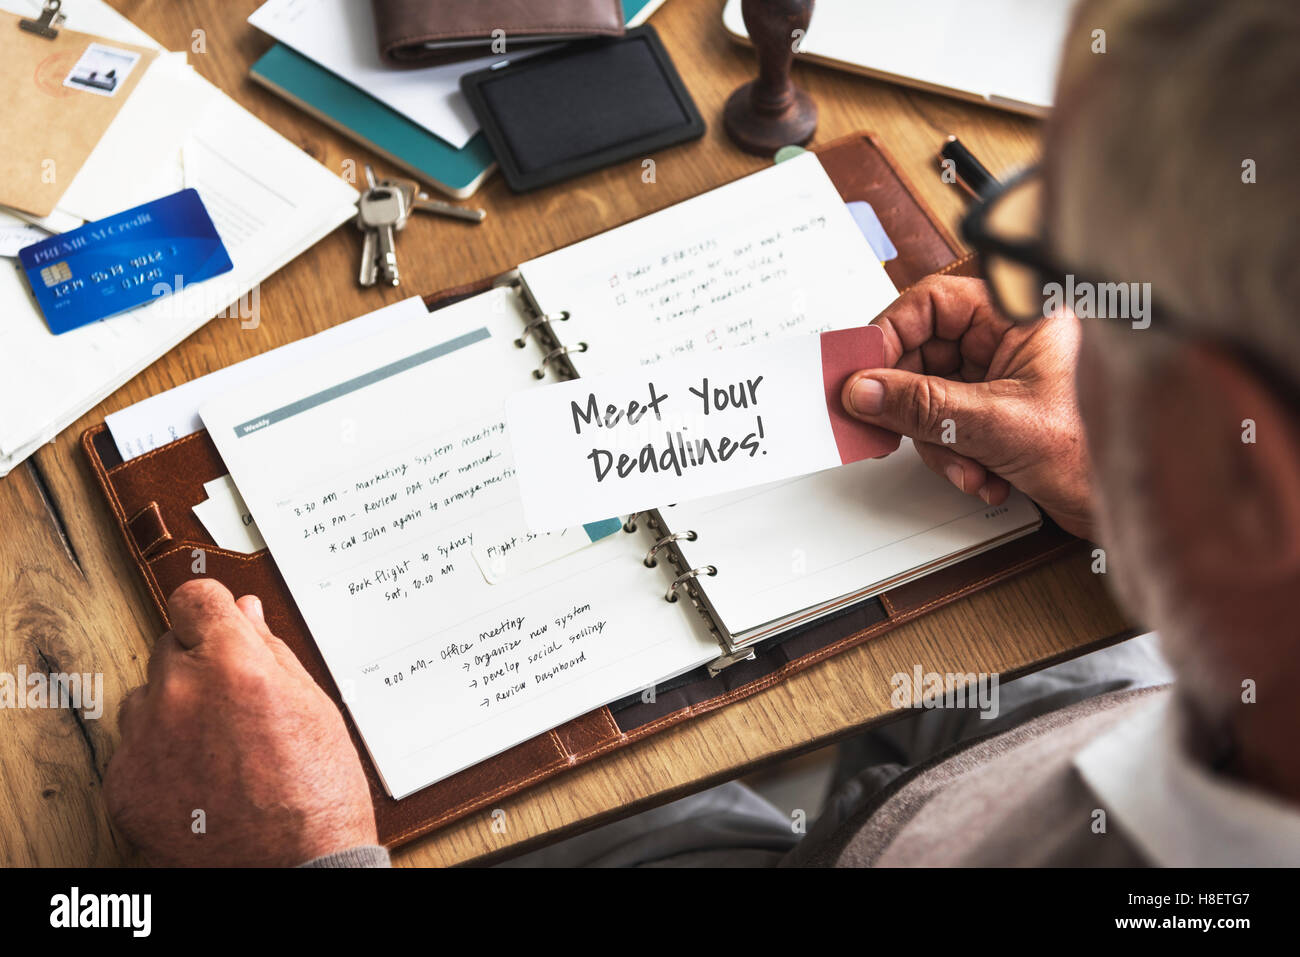 Meet Your Deadlines Appointment Events Concept - Stock Image